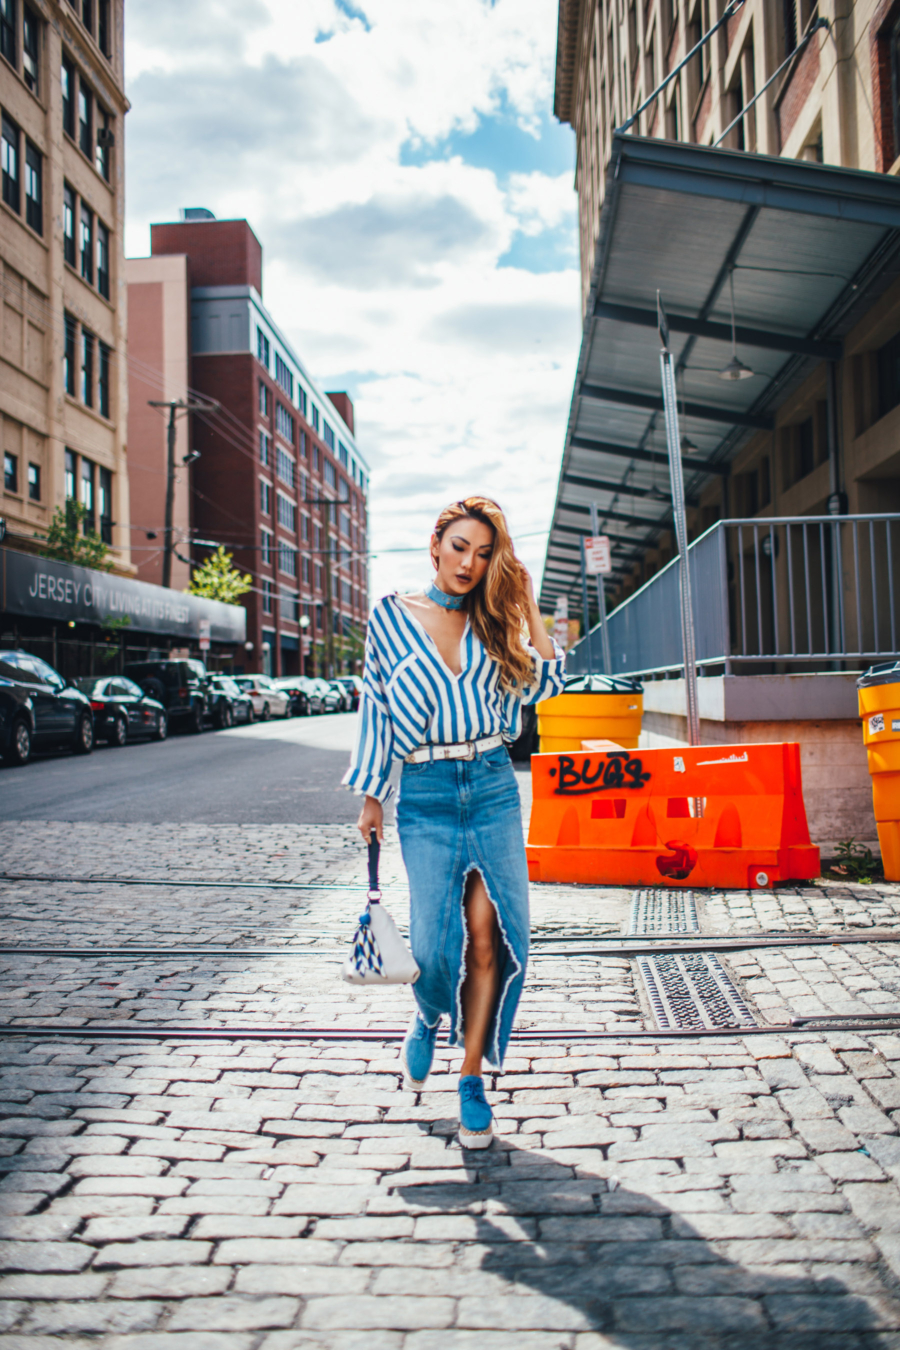 Denim Streetstyle - The Essential Guide to Pulling Off Summer Stripes // NotJessFashion.com